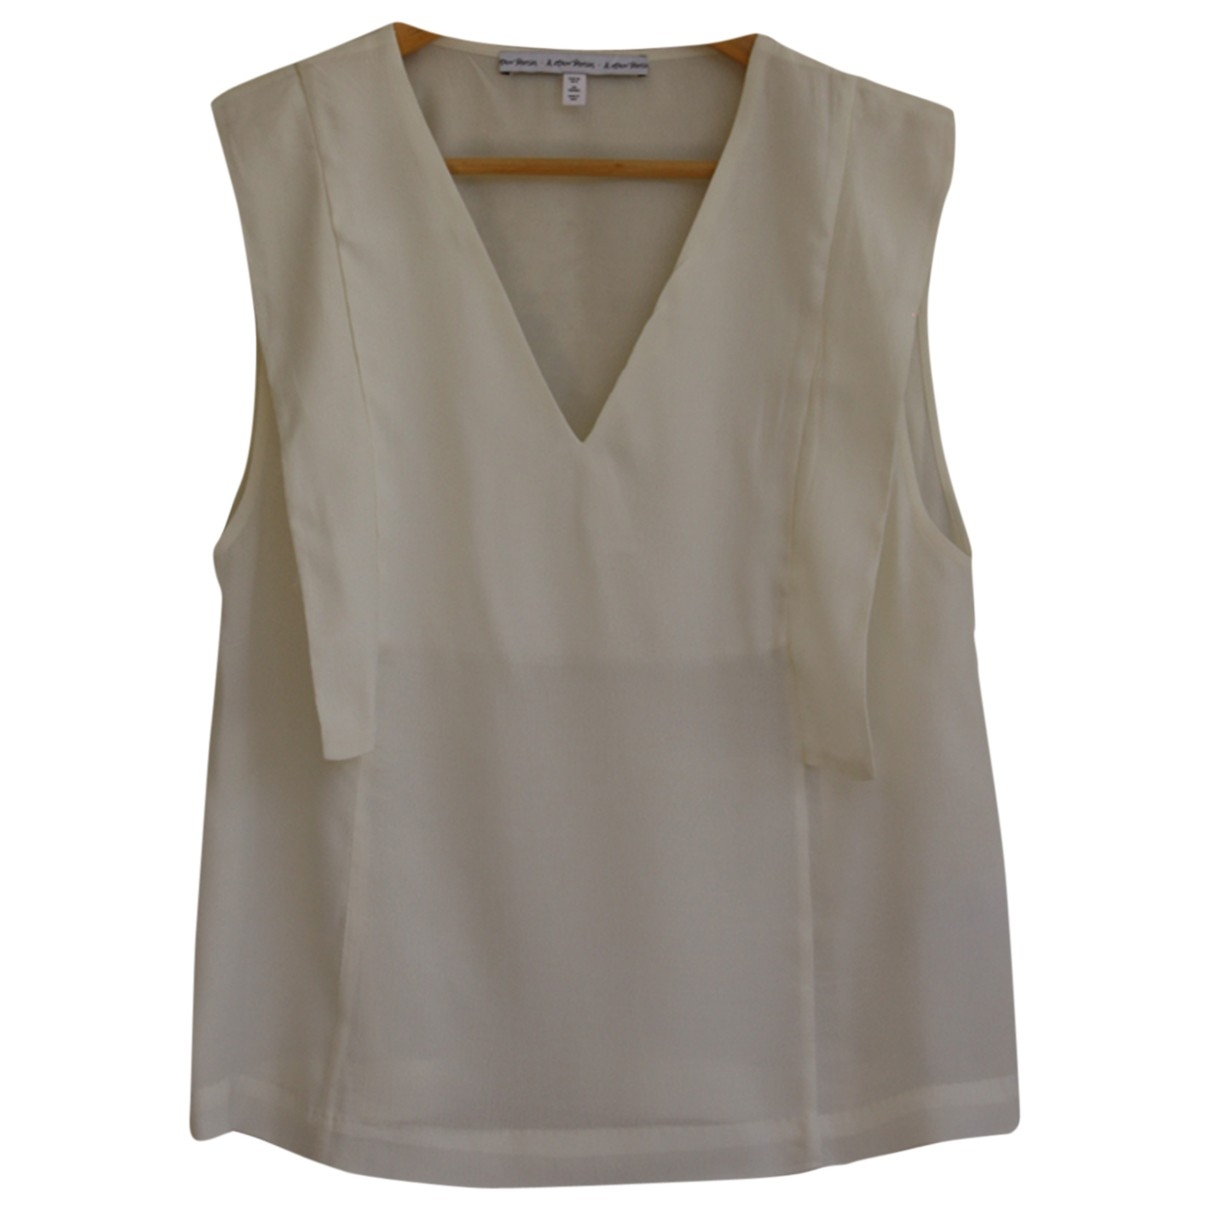 & Other Stories - Top   pour femme - beige